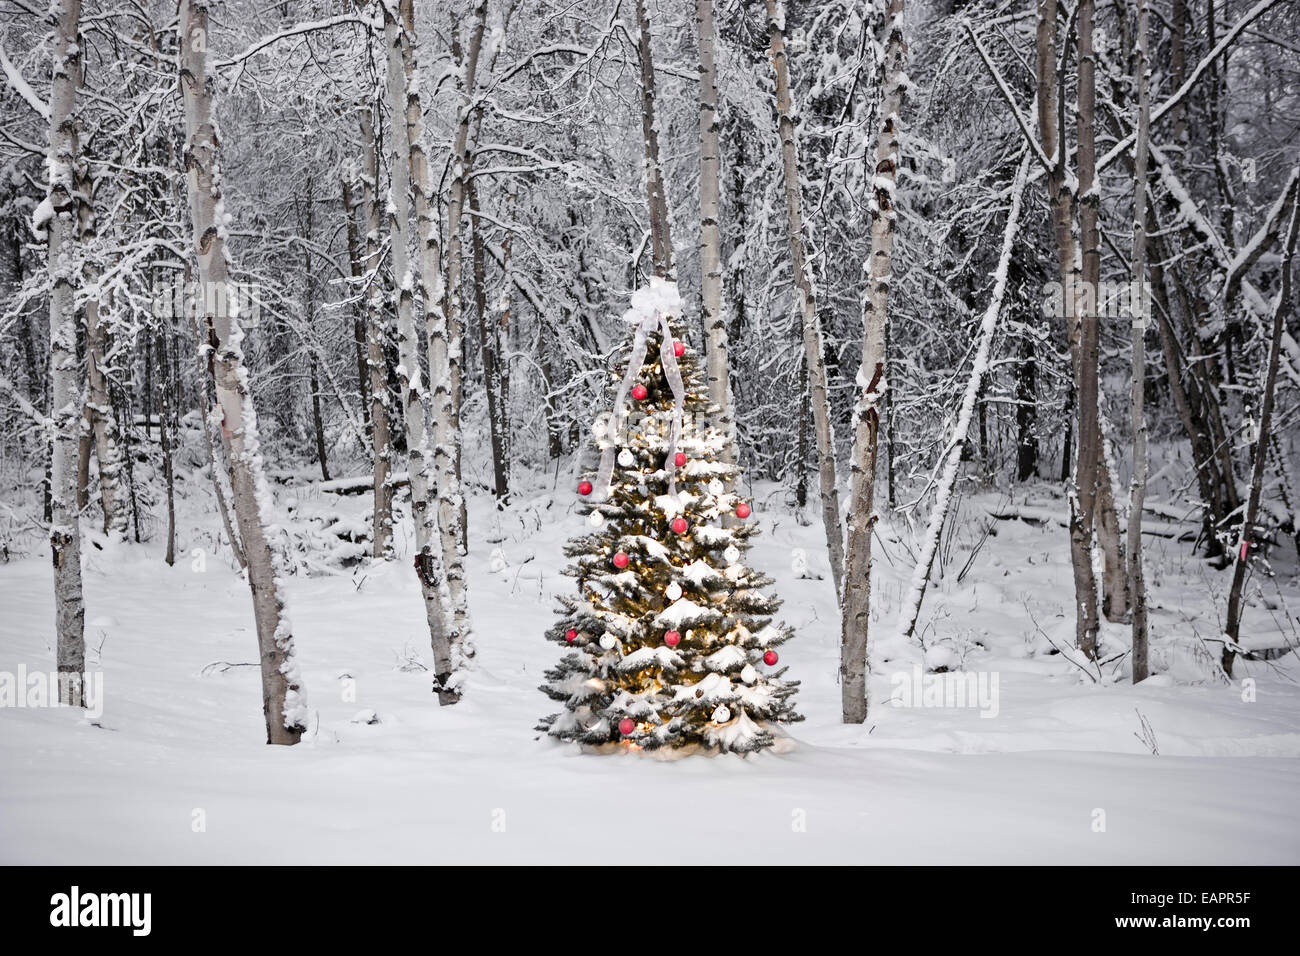 Decorated Christmas Tree In Front Of A Snow Covered Birch Forest